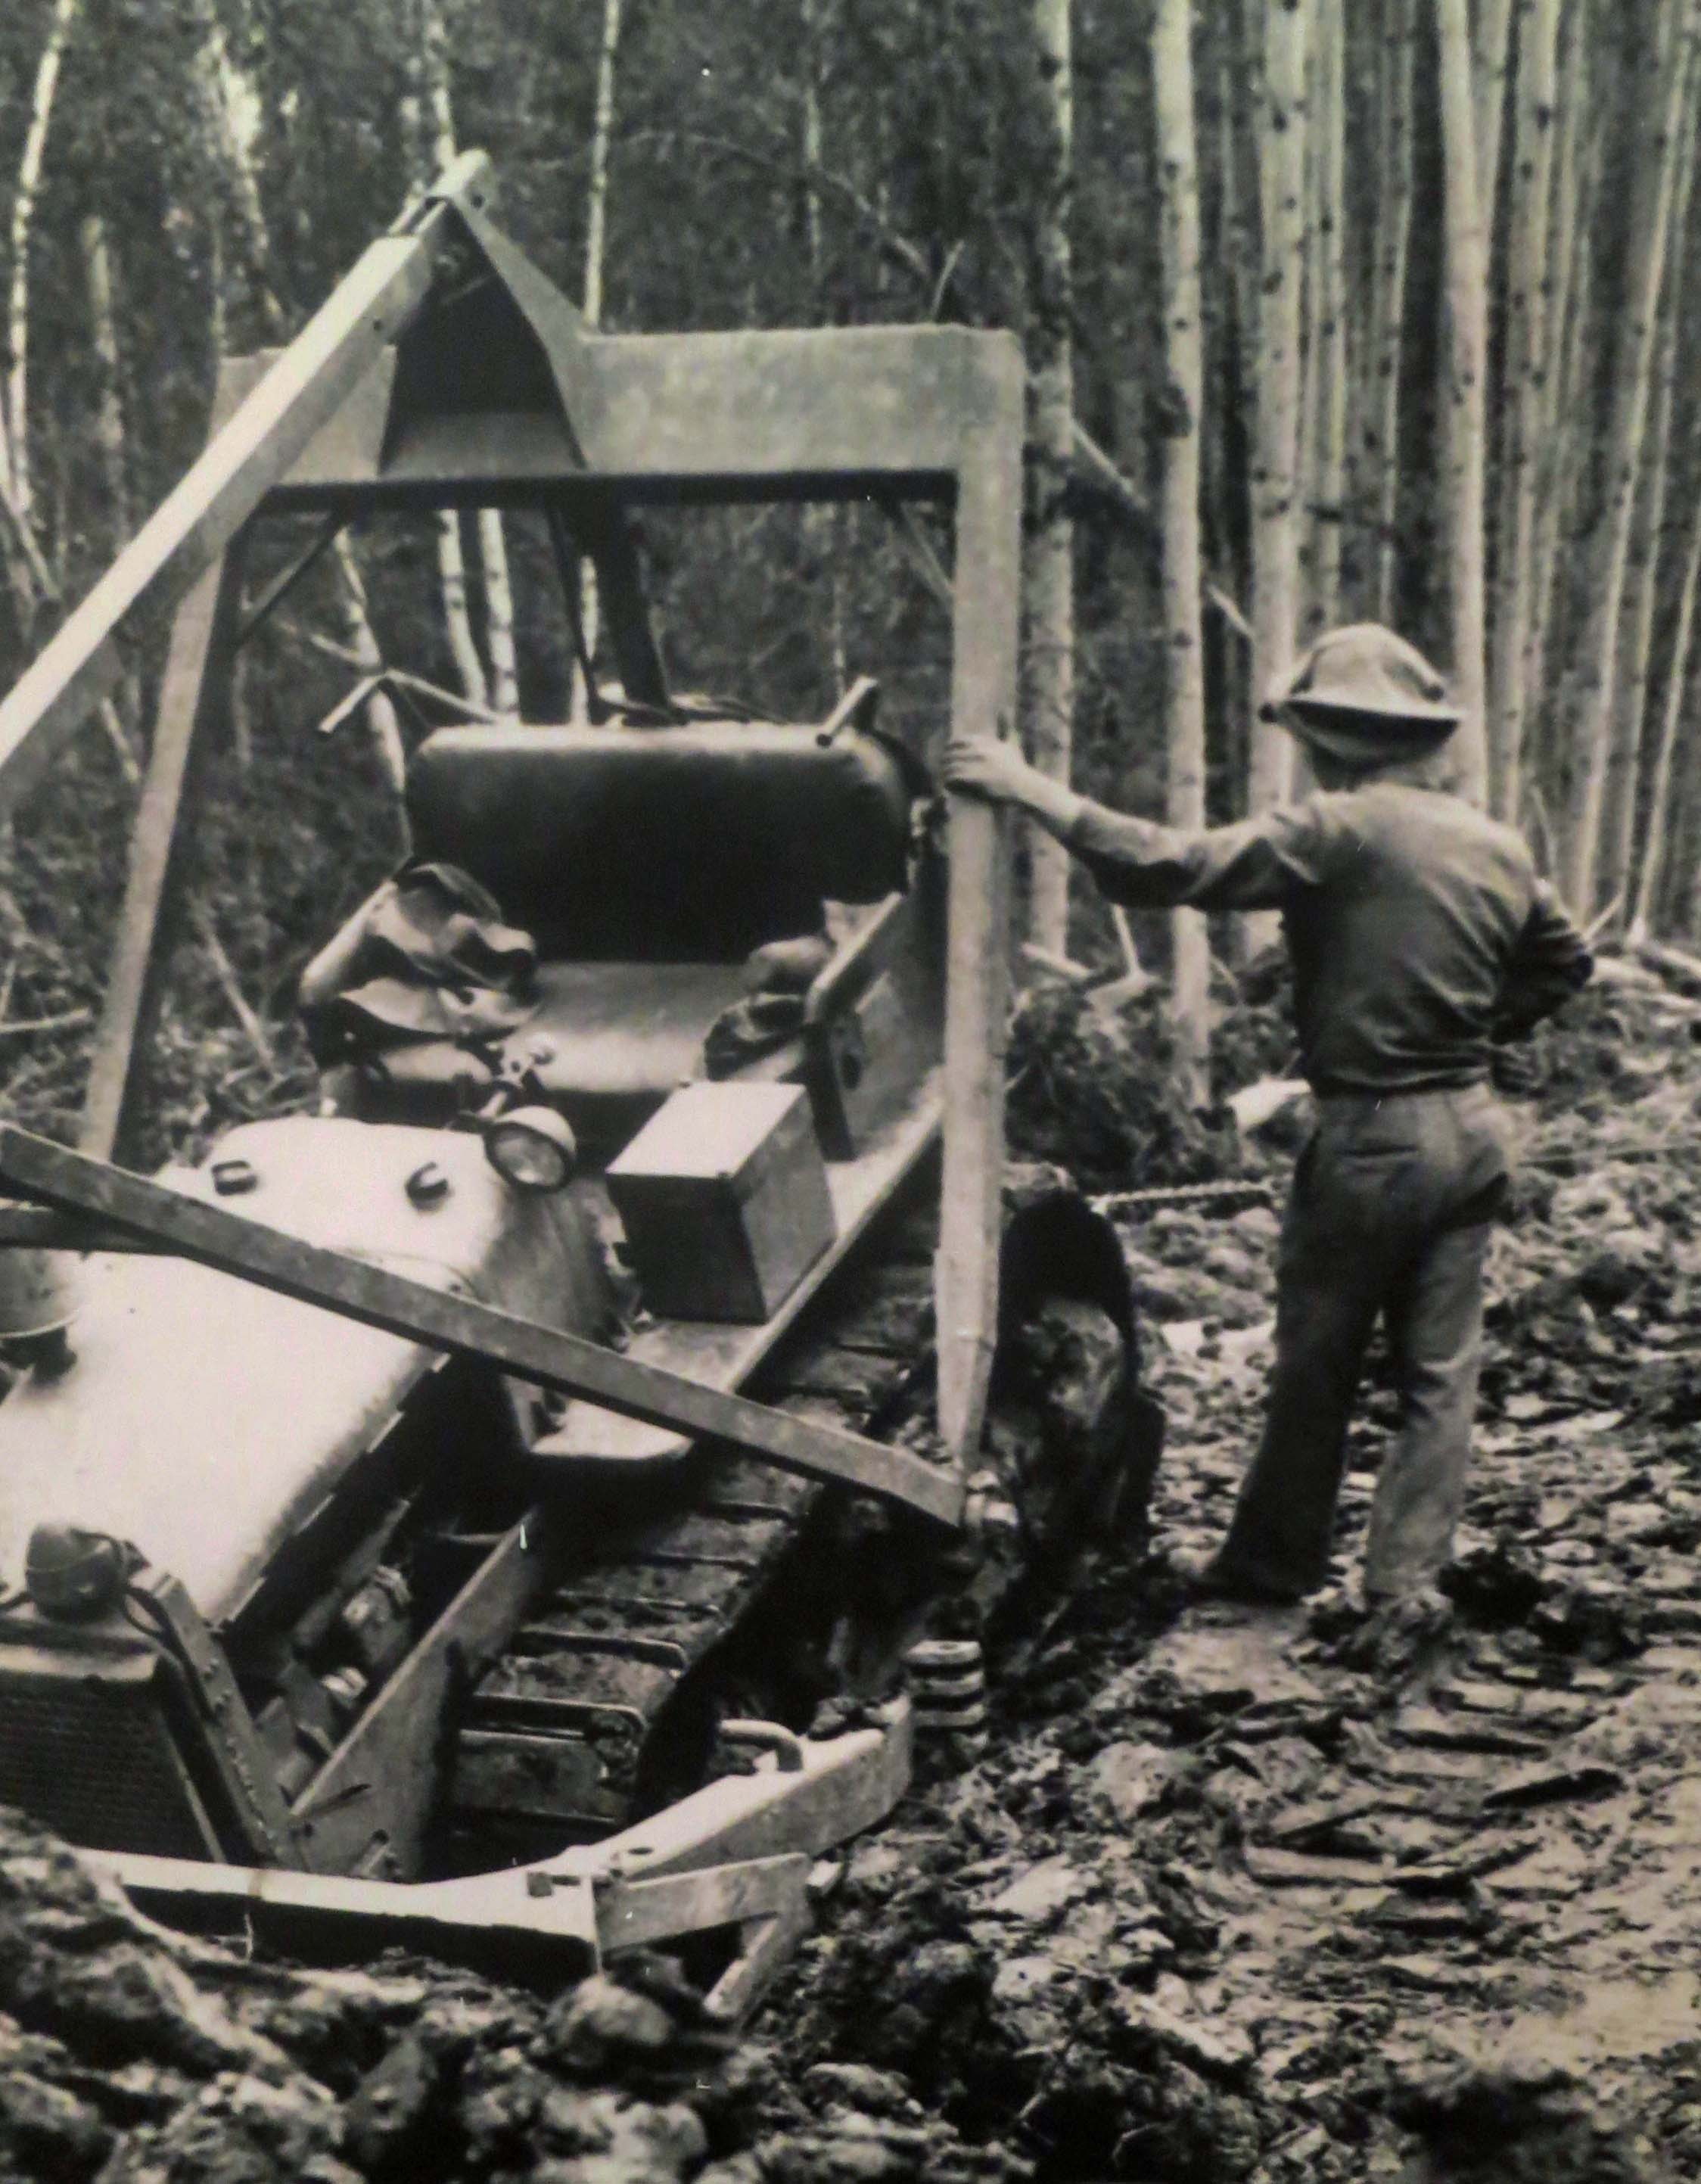 Bulldozer buried in mud while building the Alaska Highway